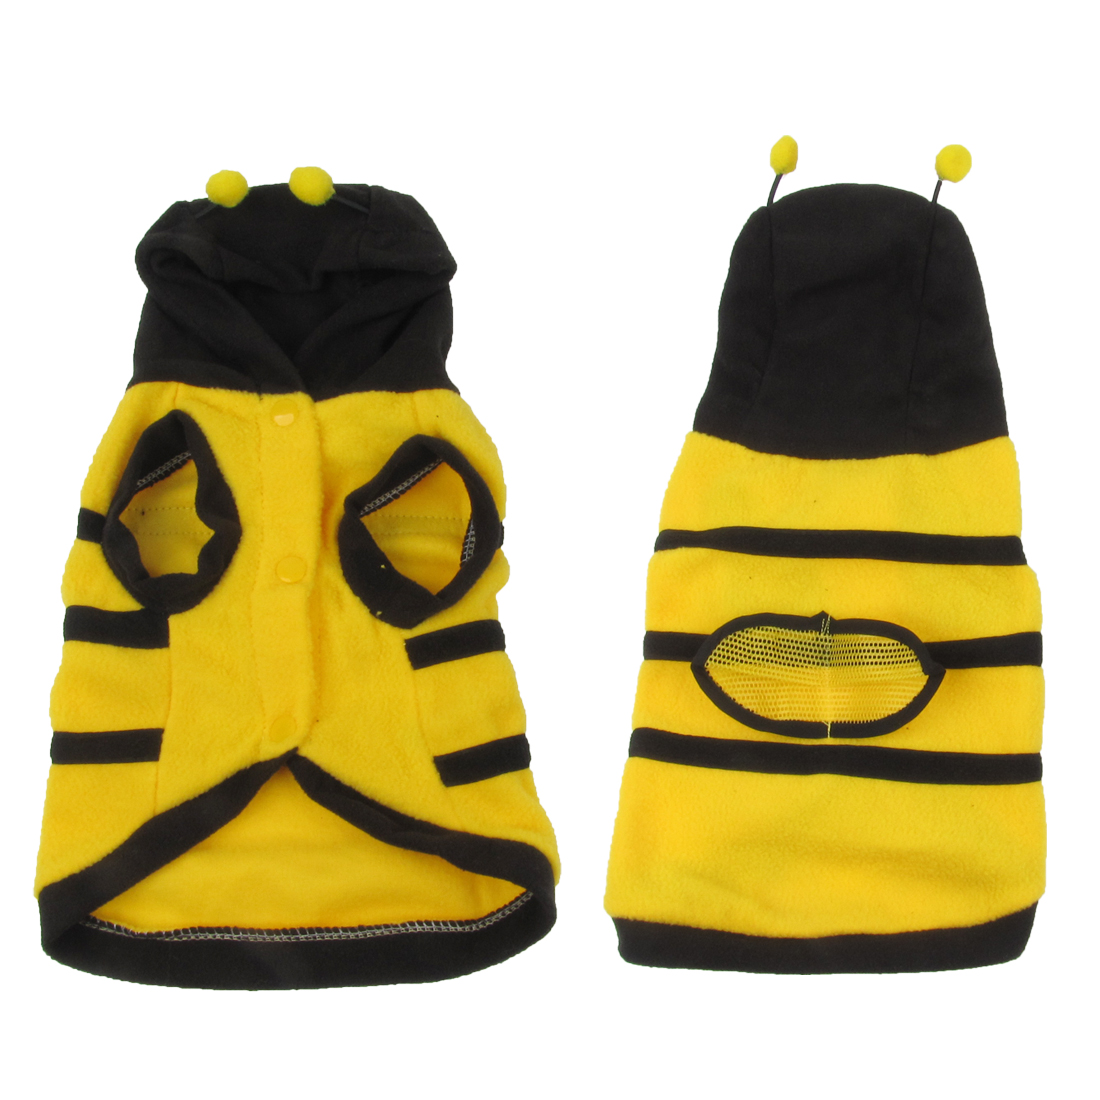 Single Breasted Bee Design Hooded Pet Dog Coat Sweater Yellow Black Size L